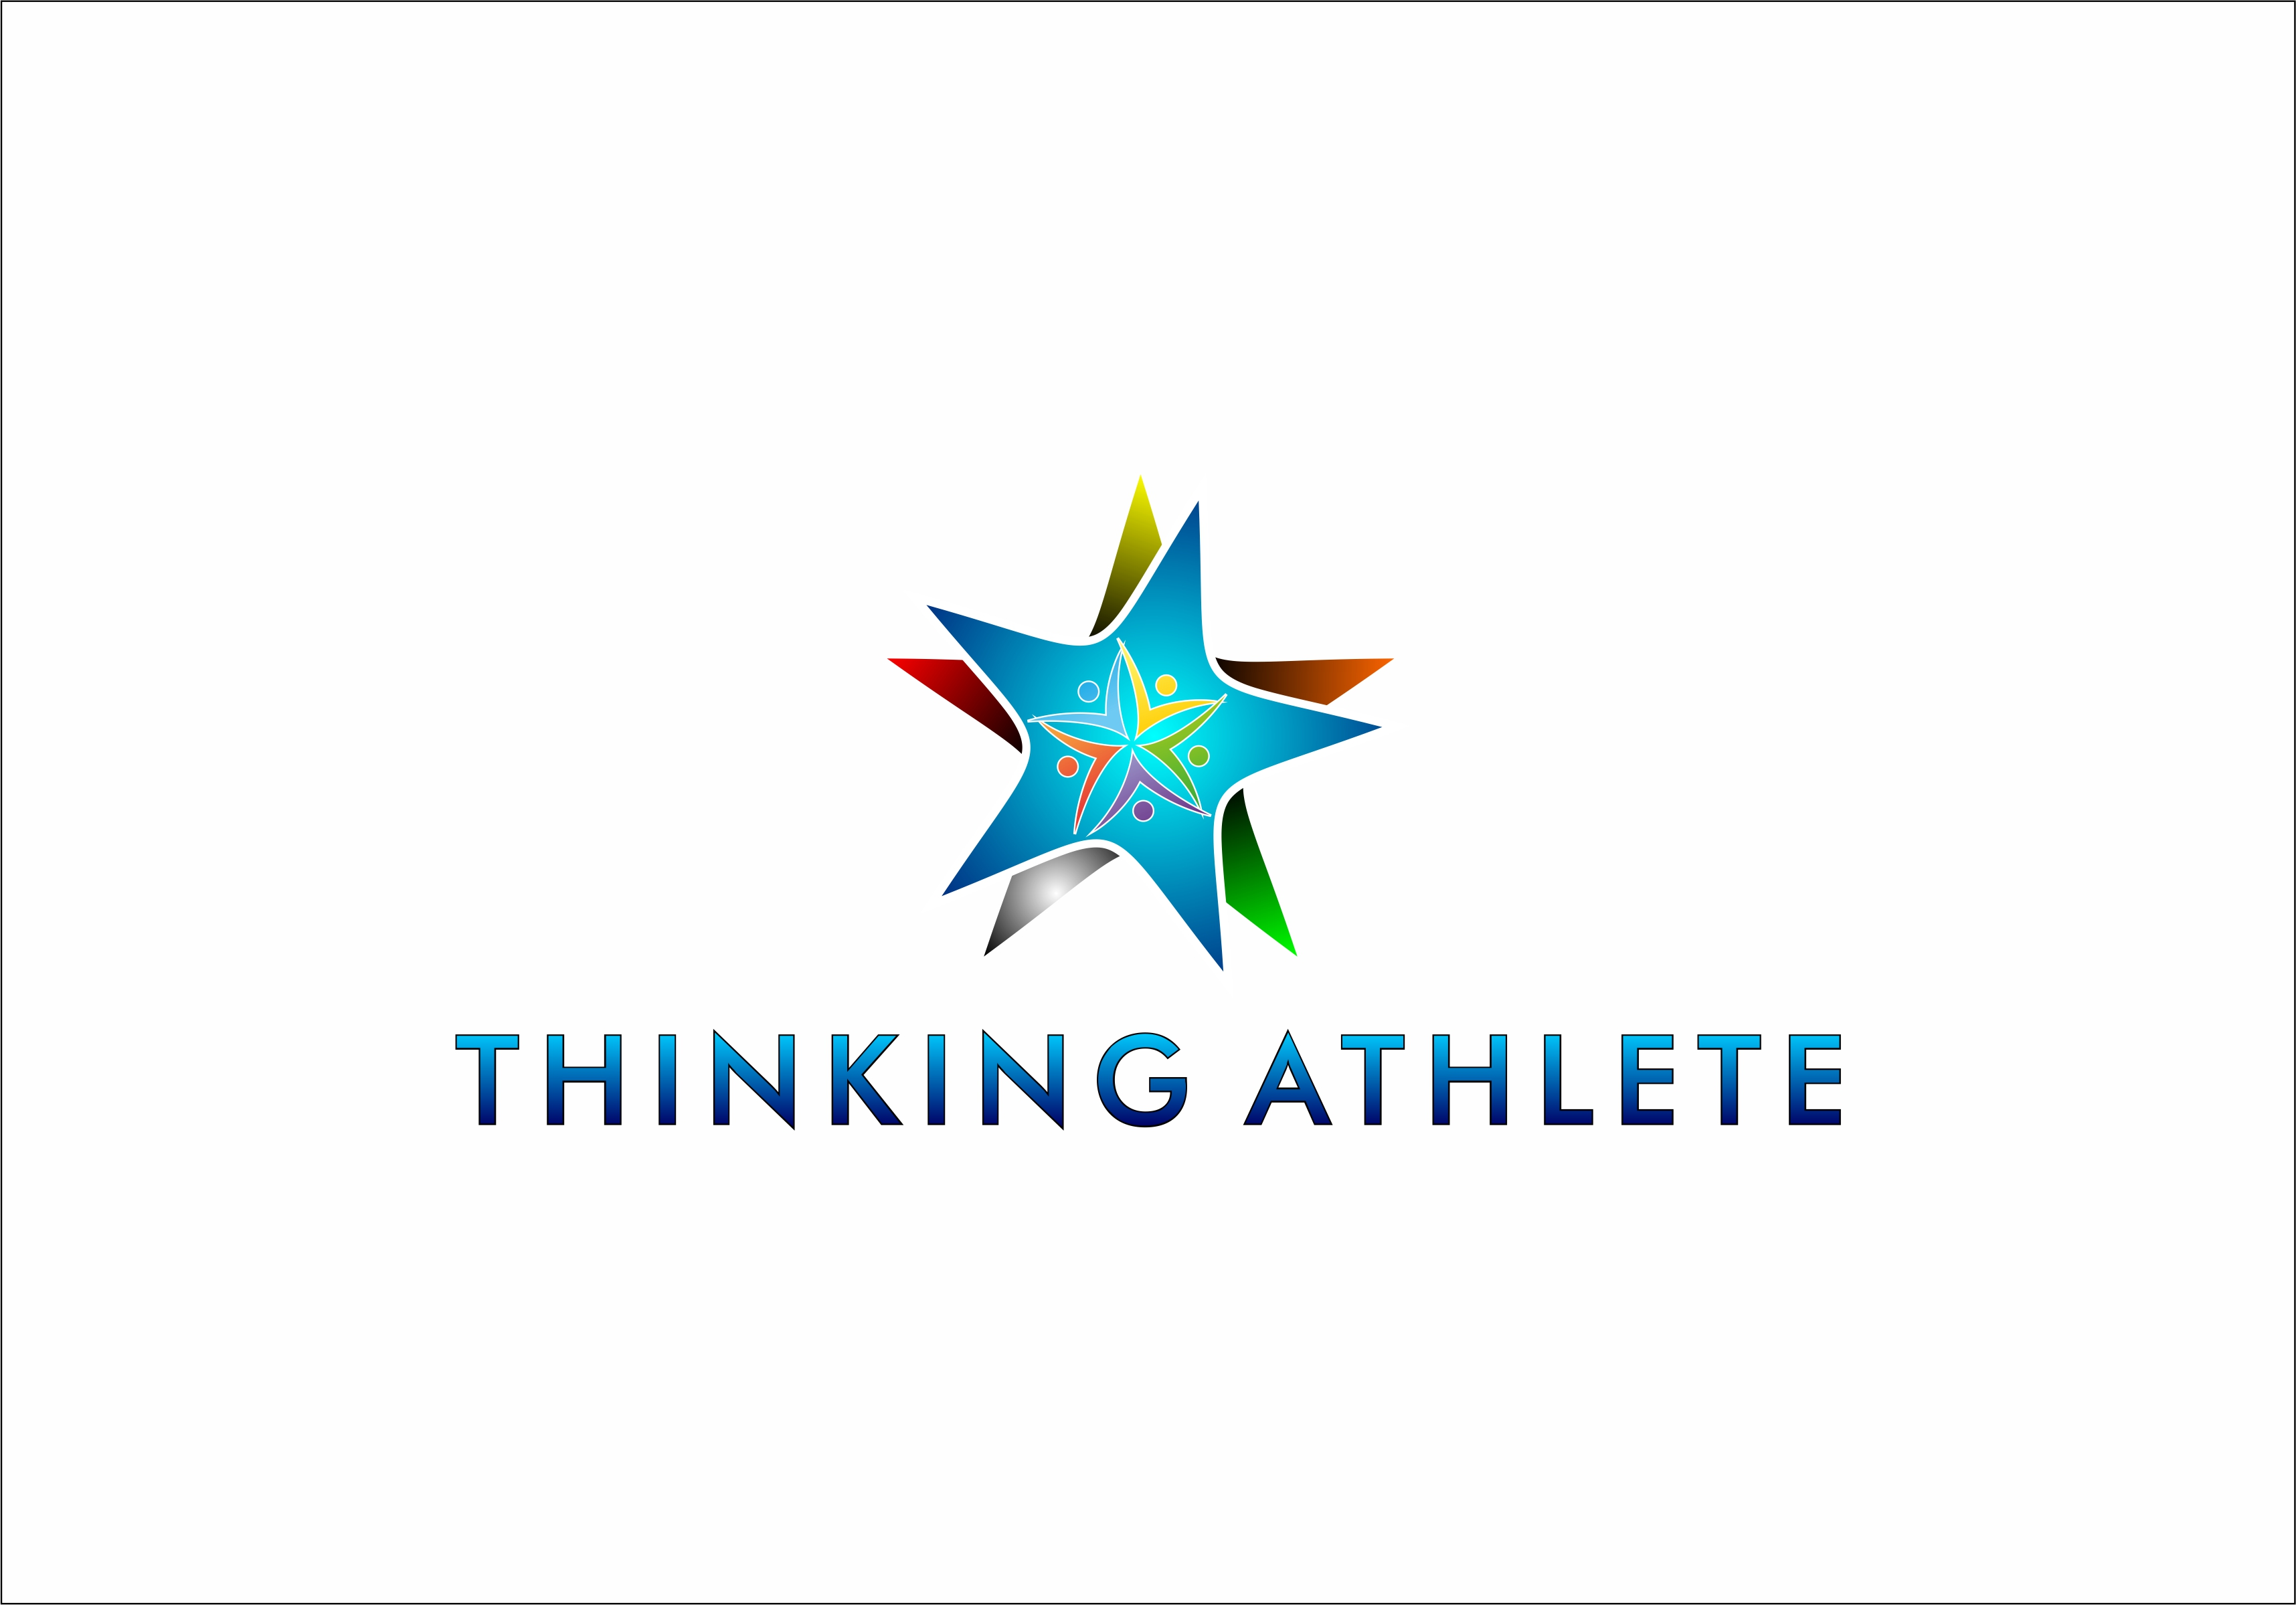 Logo Design by Fatih Ercan - Entry No. 40 in the Logo Design Contest Thinking Athlete Logo Design.